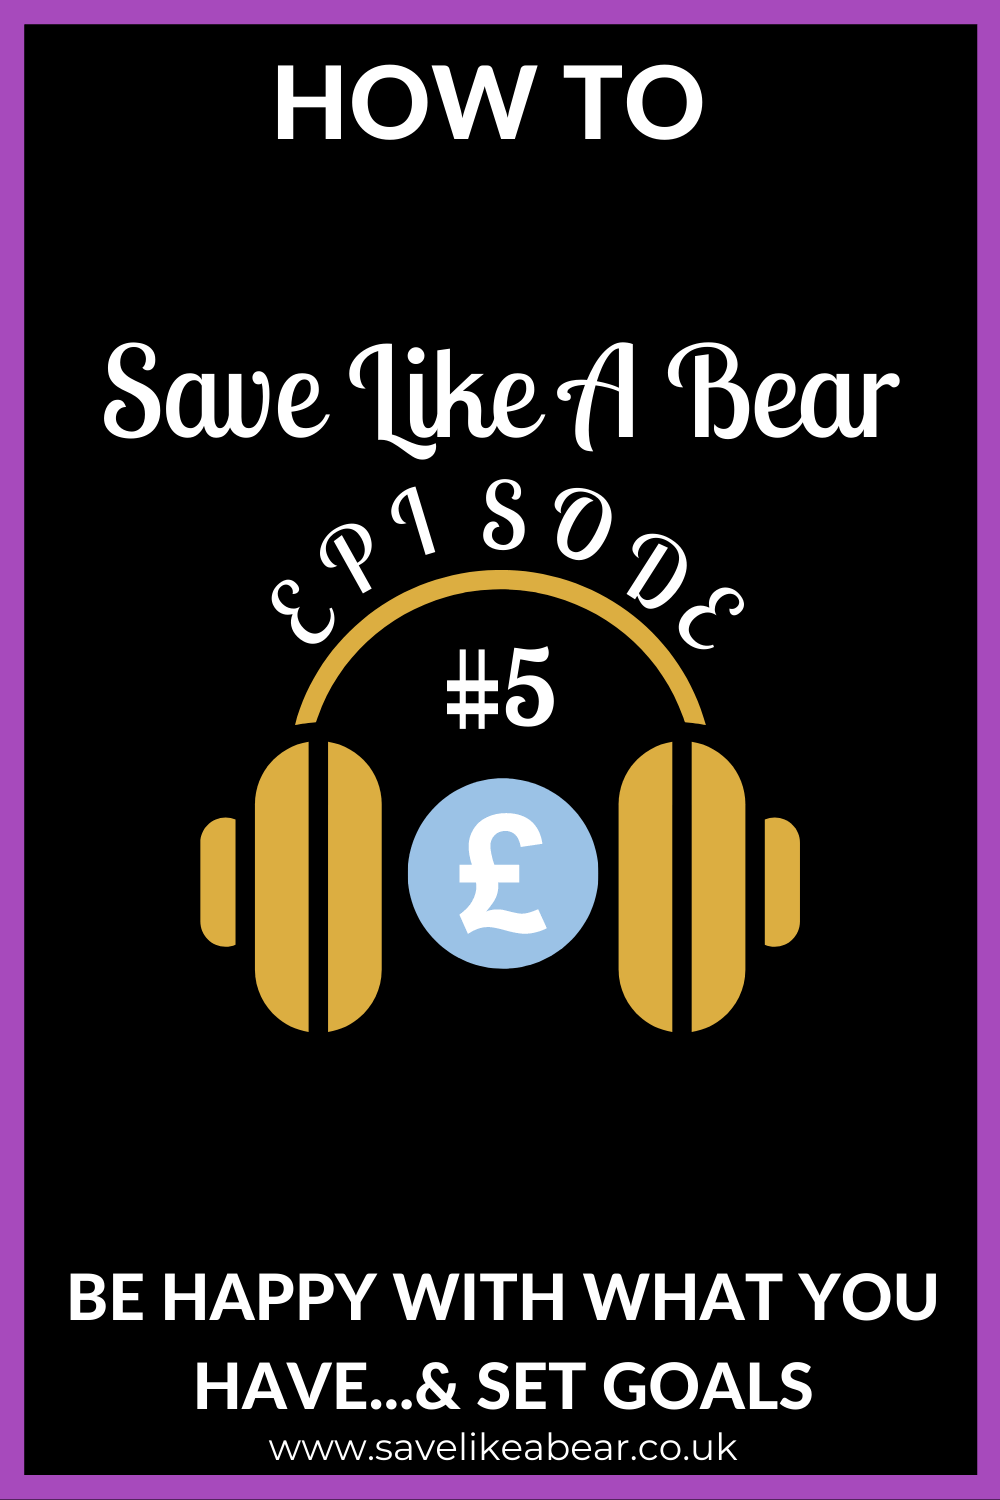 Be happy with what you have if you and set goals: episode 5 of the How to save like a bear podcast